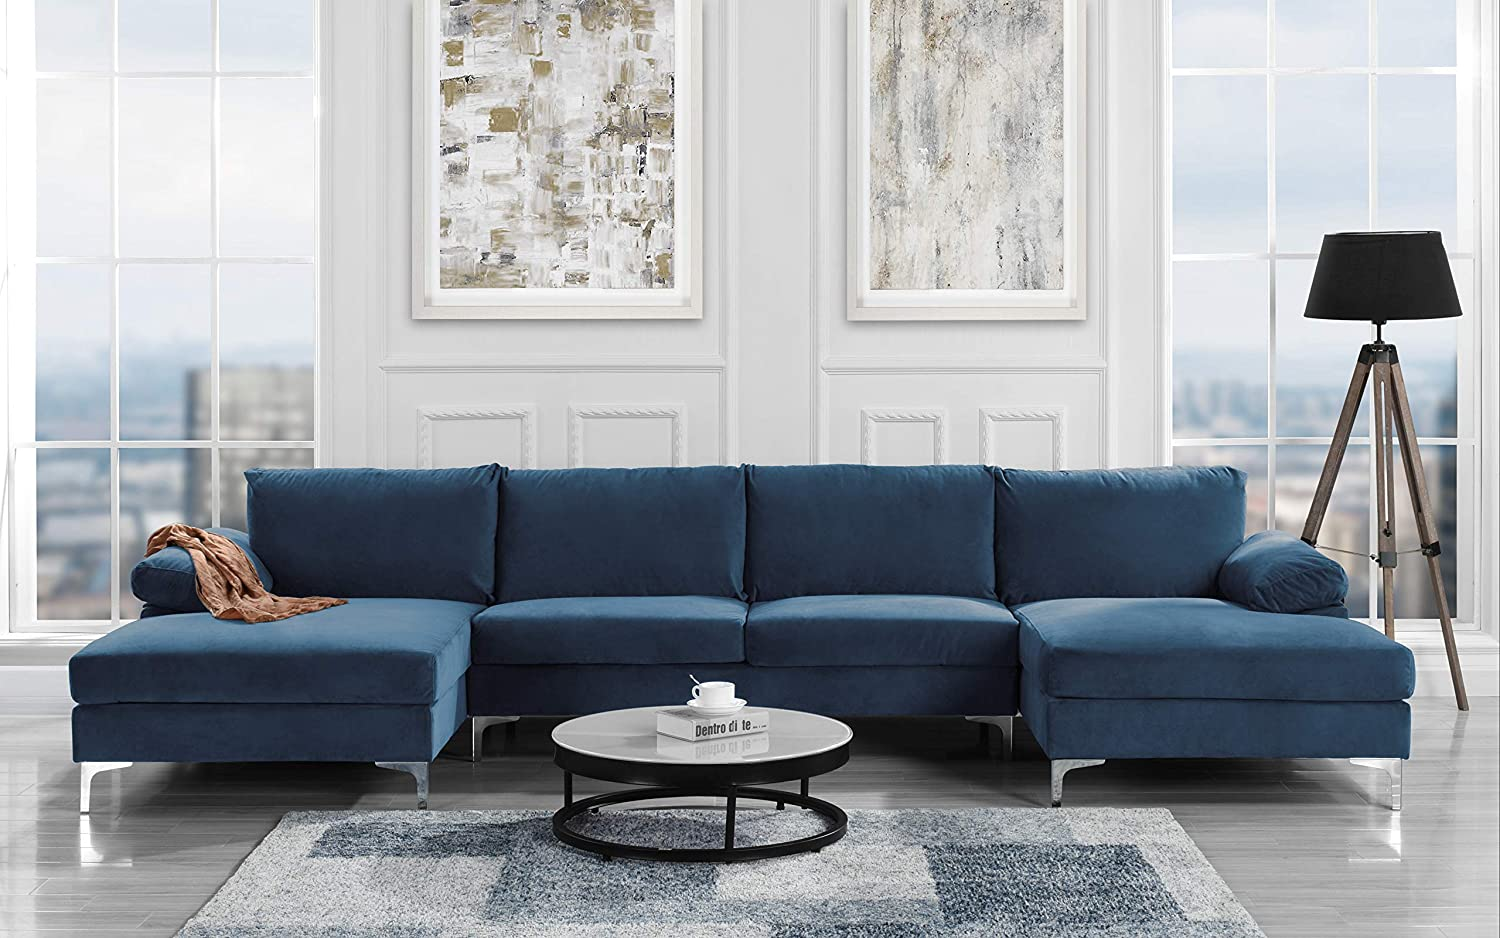 Amazon.com: Sofamania Modern Large Velvet Fabric U-Shape Sectional Sofa, Double Extra Wide Chaise Lounge Couch (Navy): Furniture & Decor